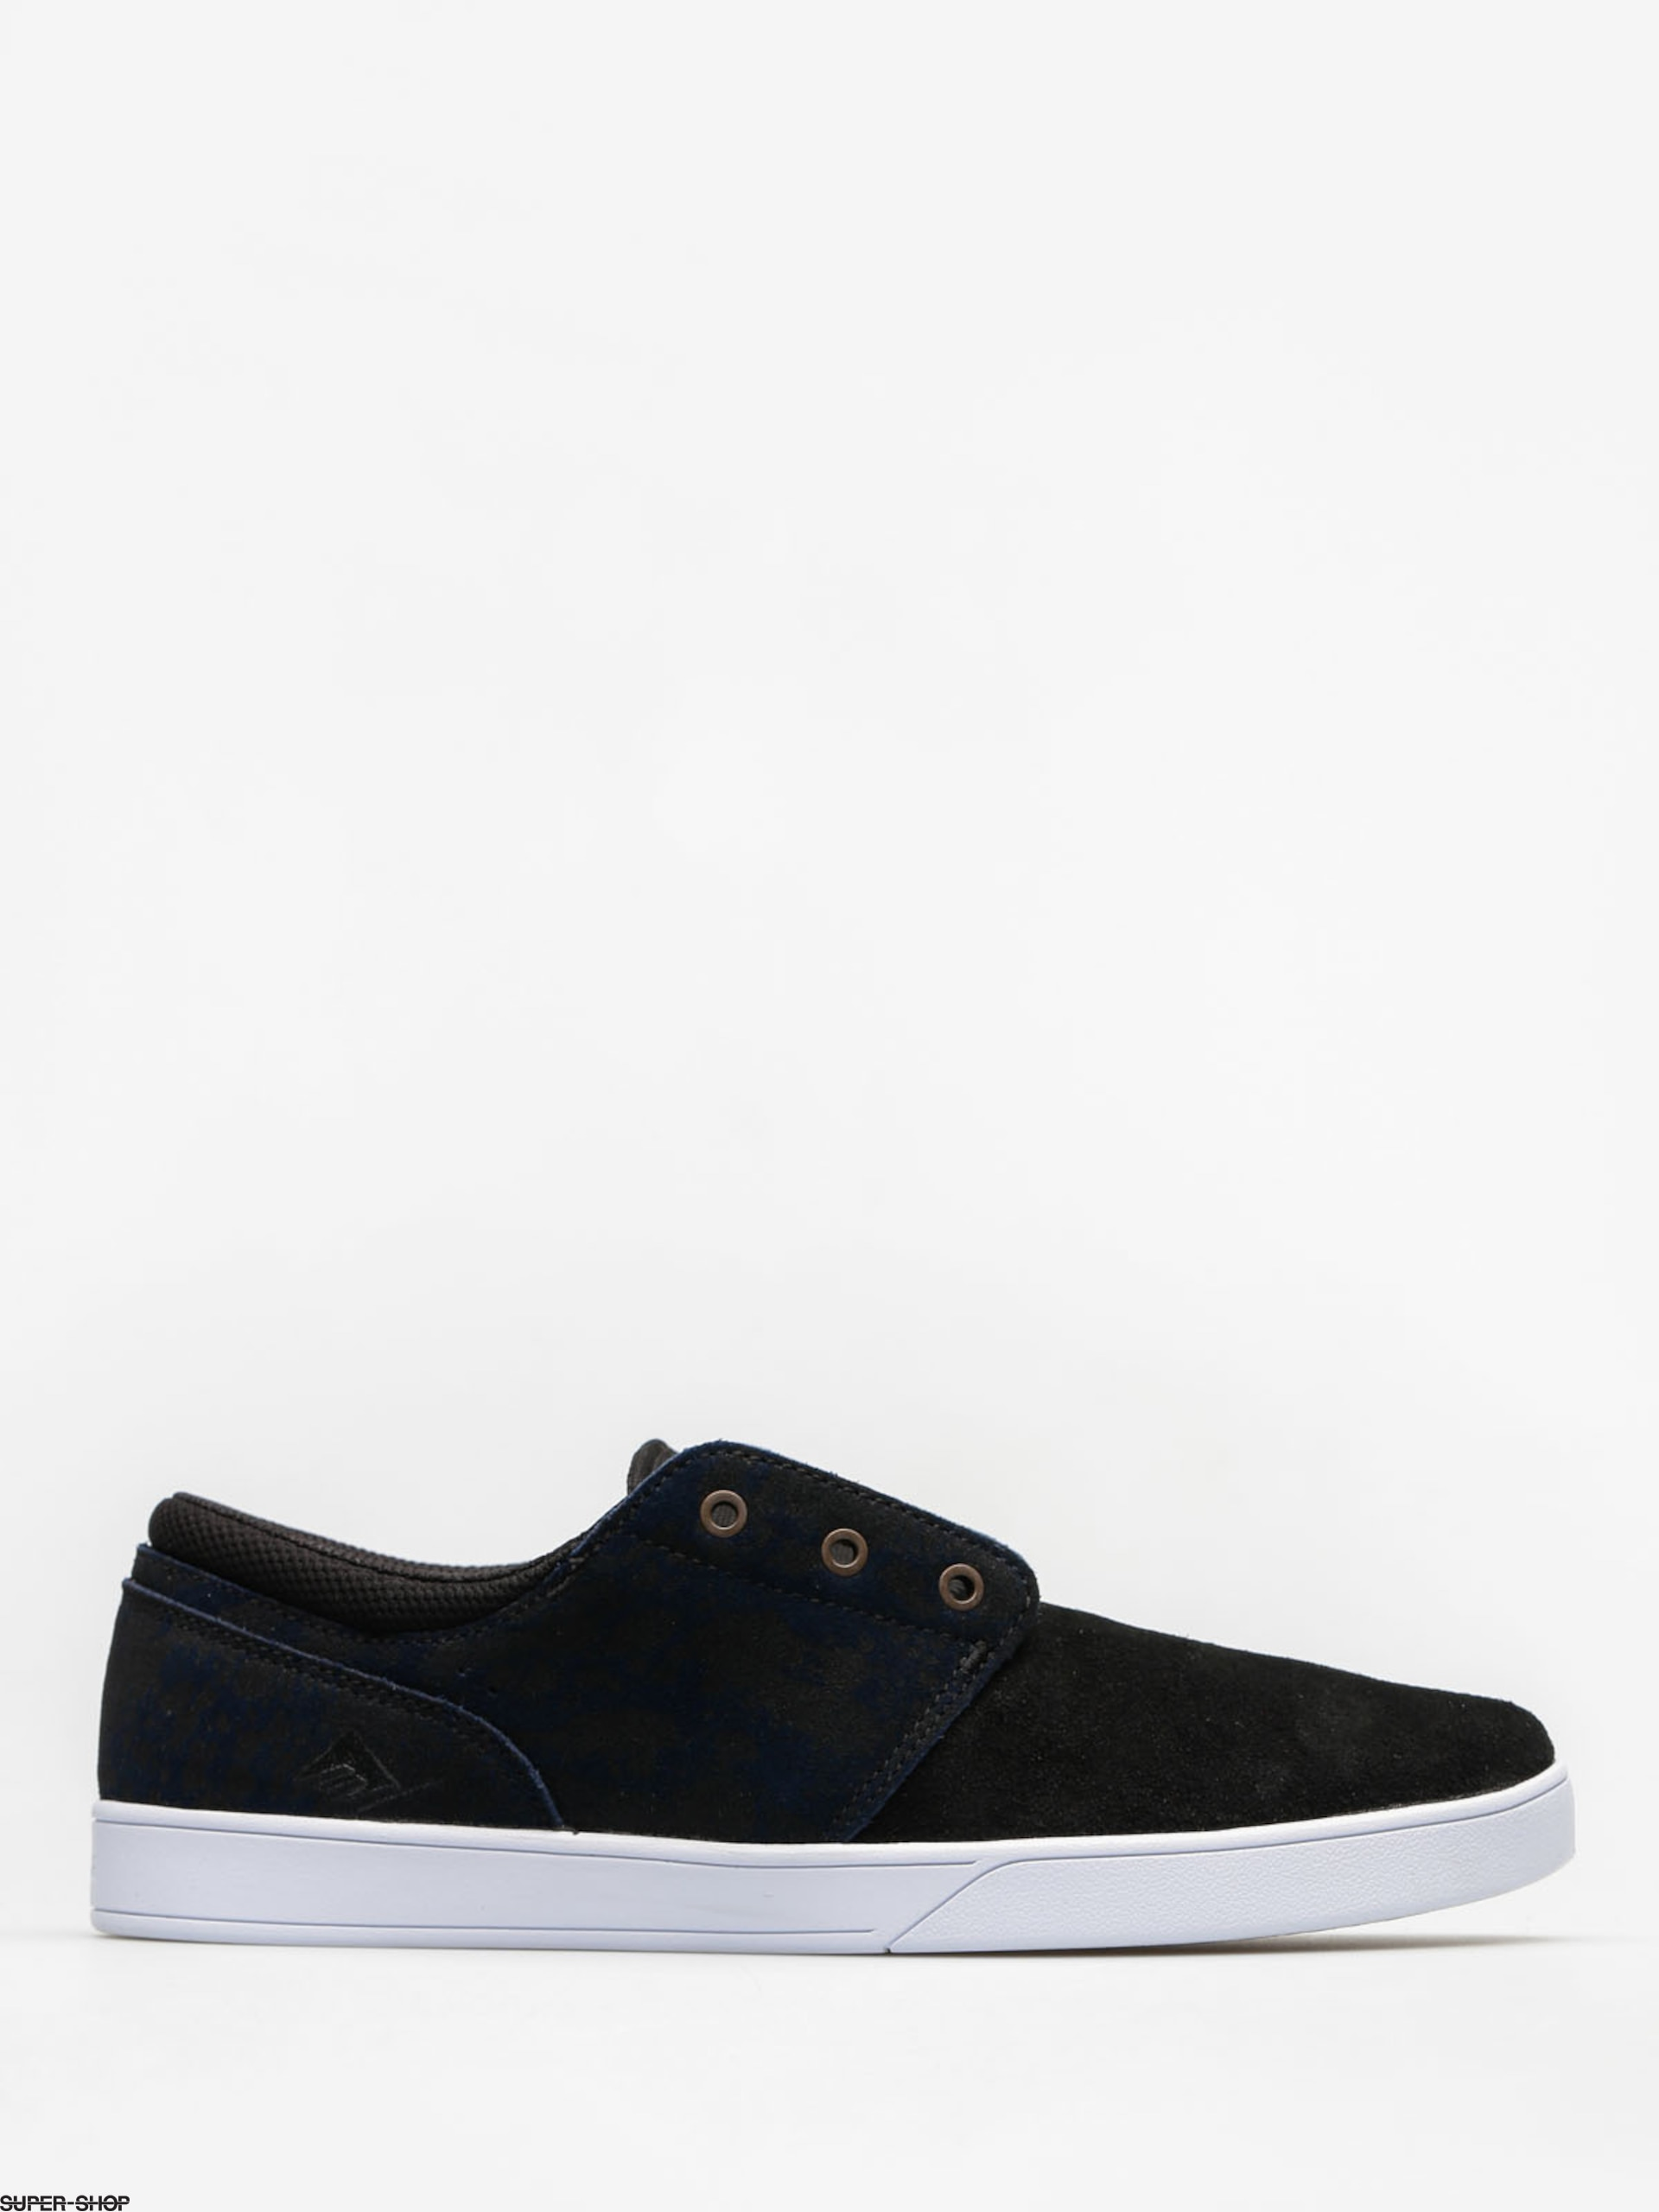 Emerica Shoes The Figueroa (navy/black)